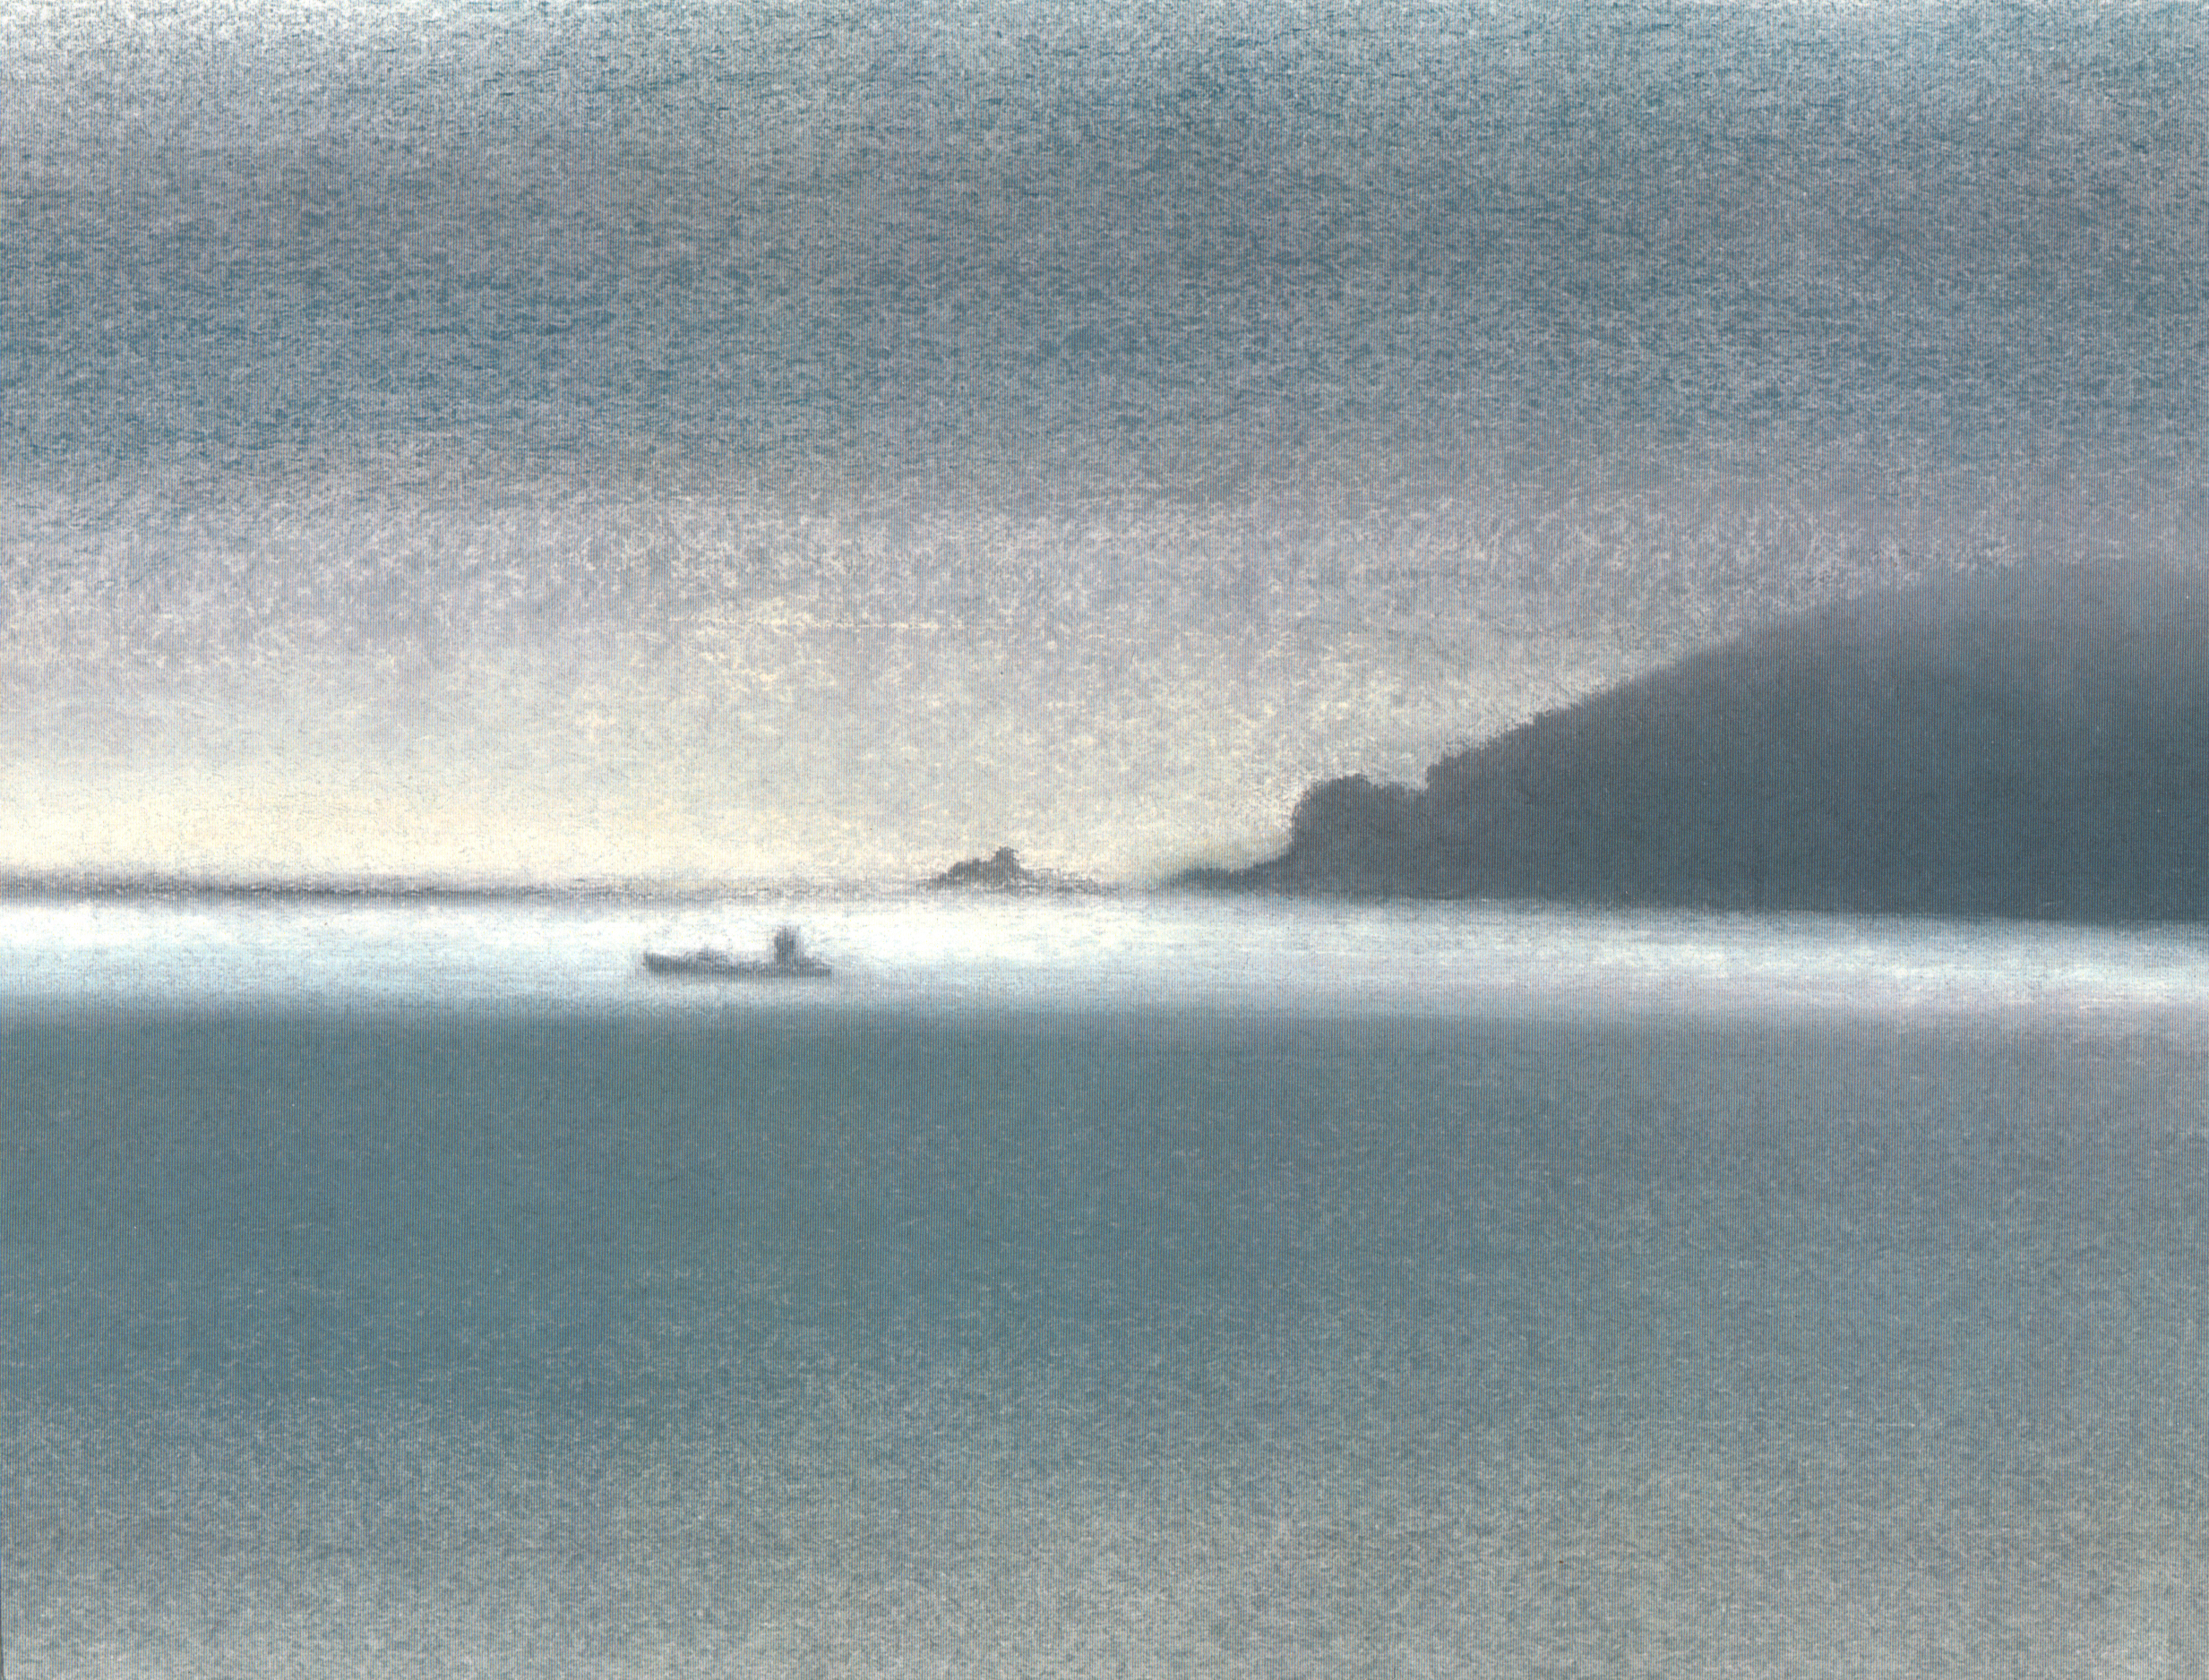 Penlee Point in the mist